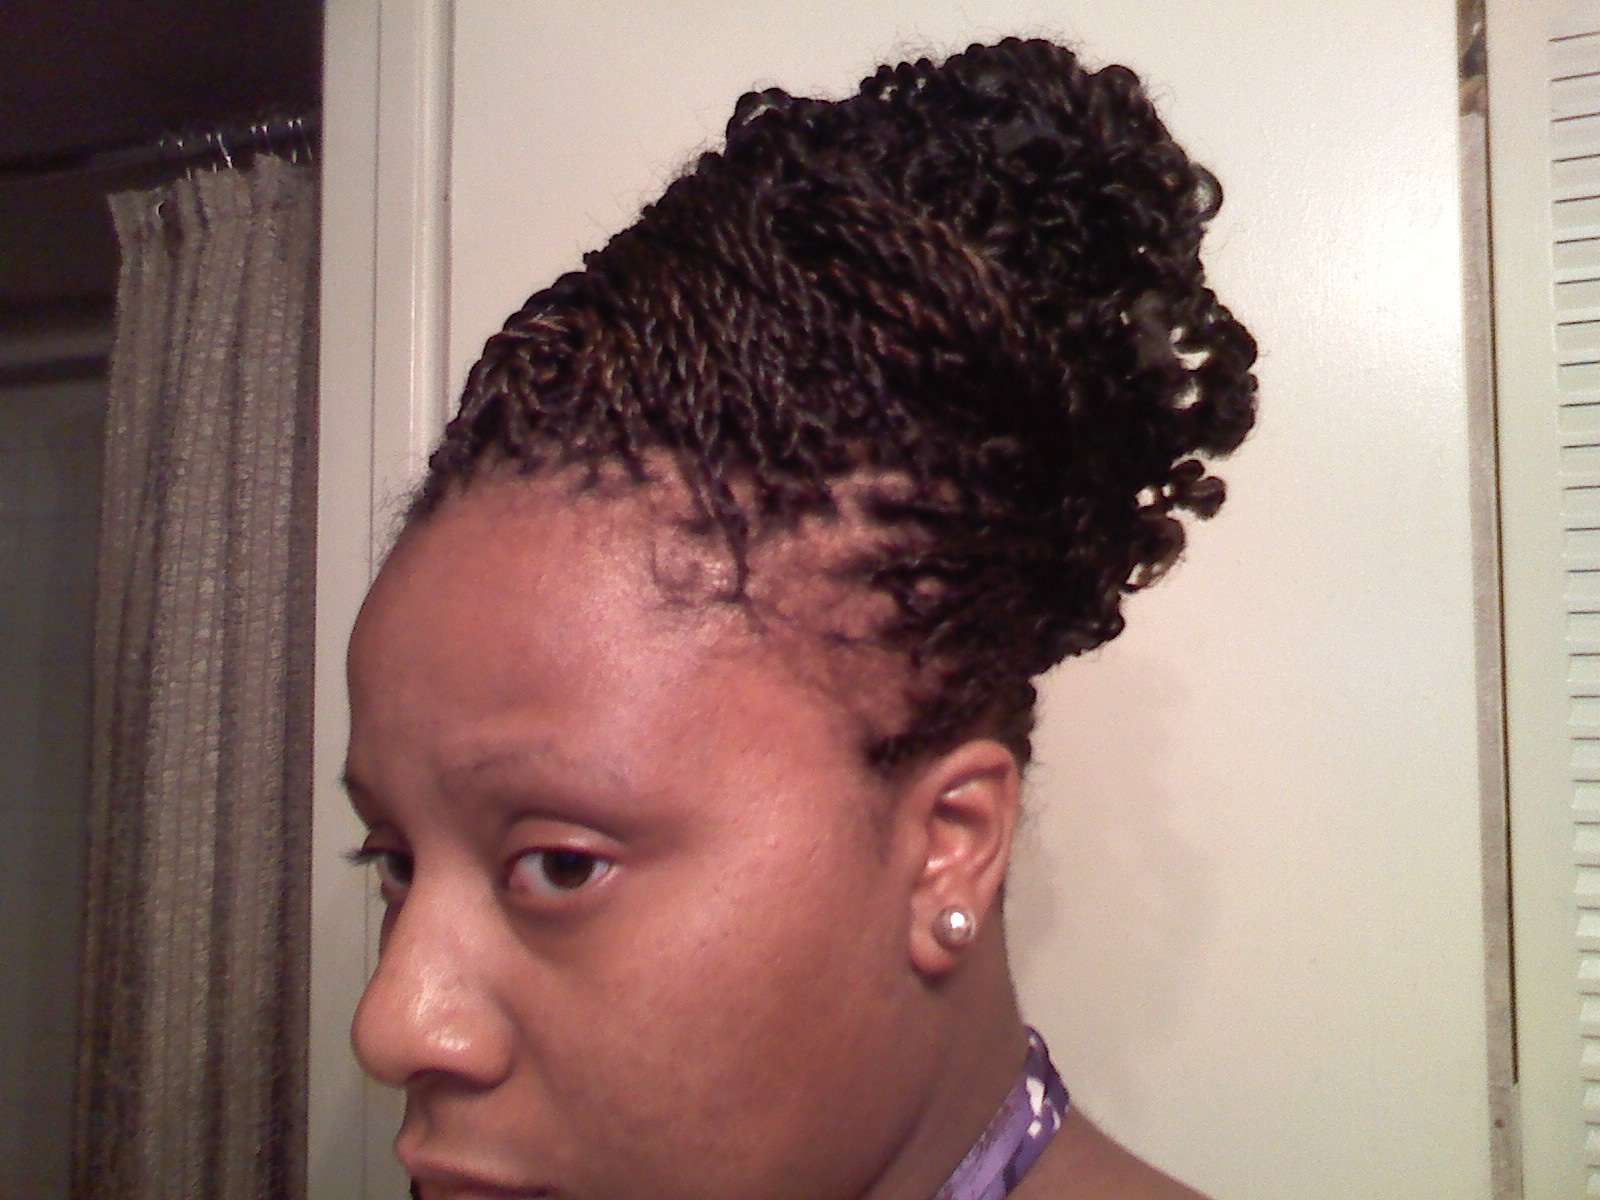 senegalese twist updo hairstyles : Senegalese Twist Hairstyle Pictures to pin on Pinterest